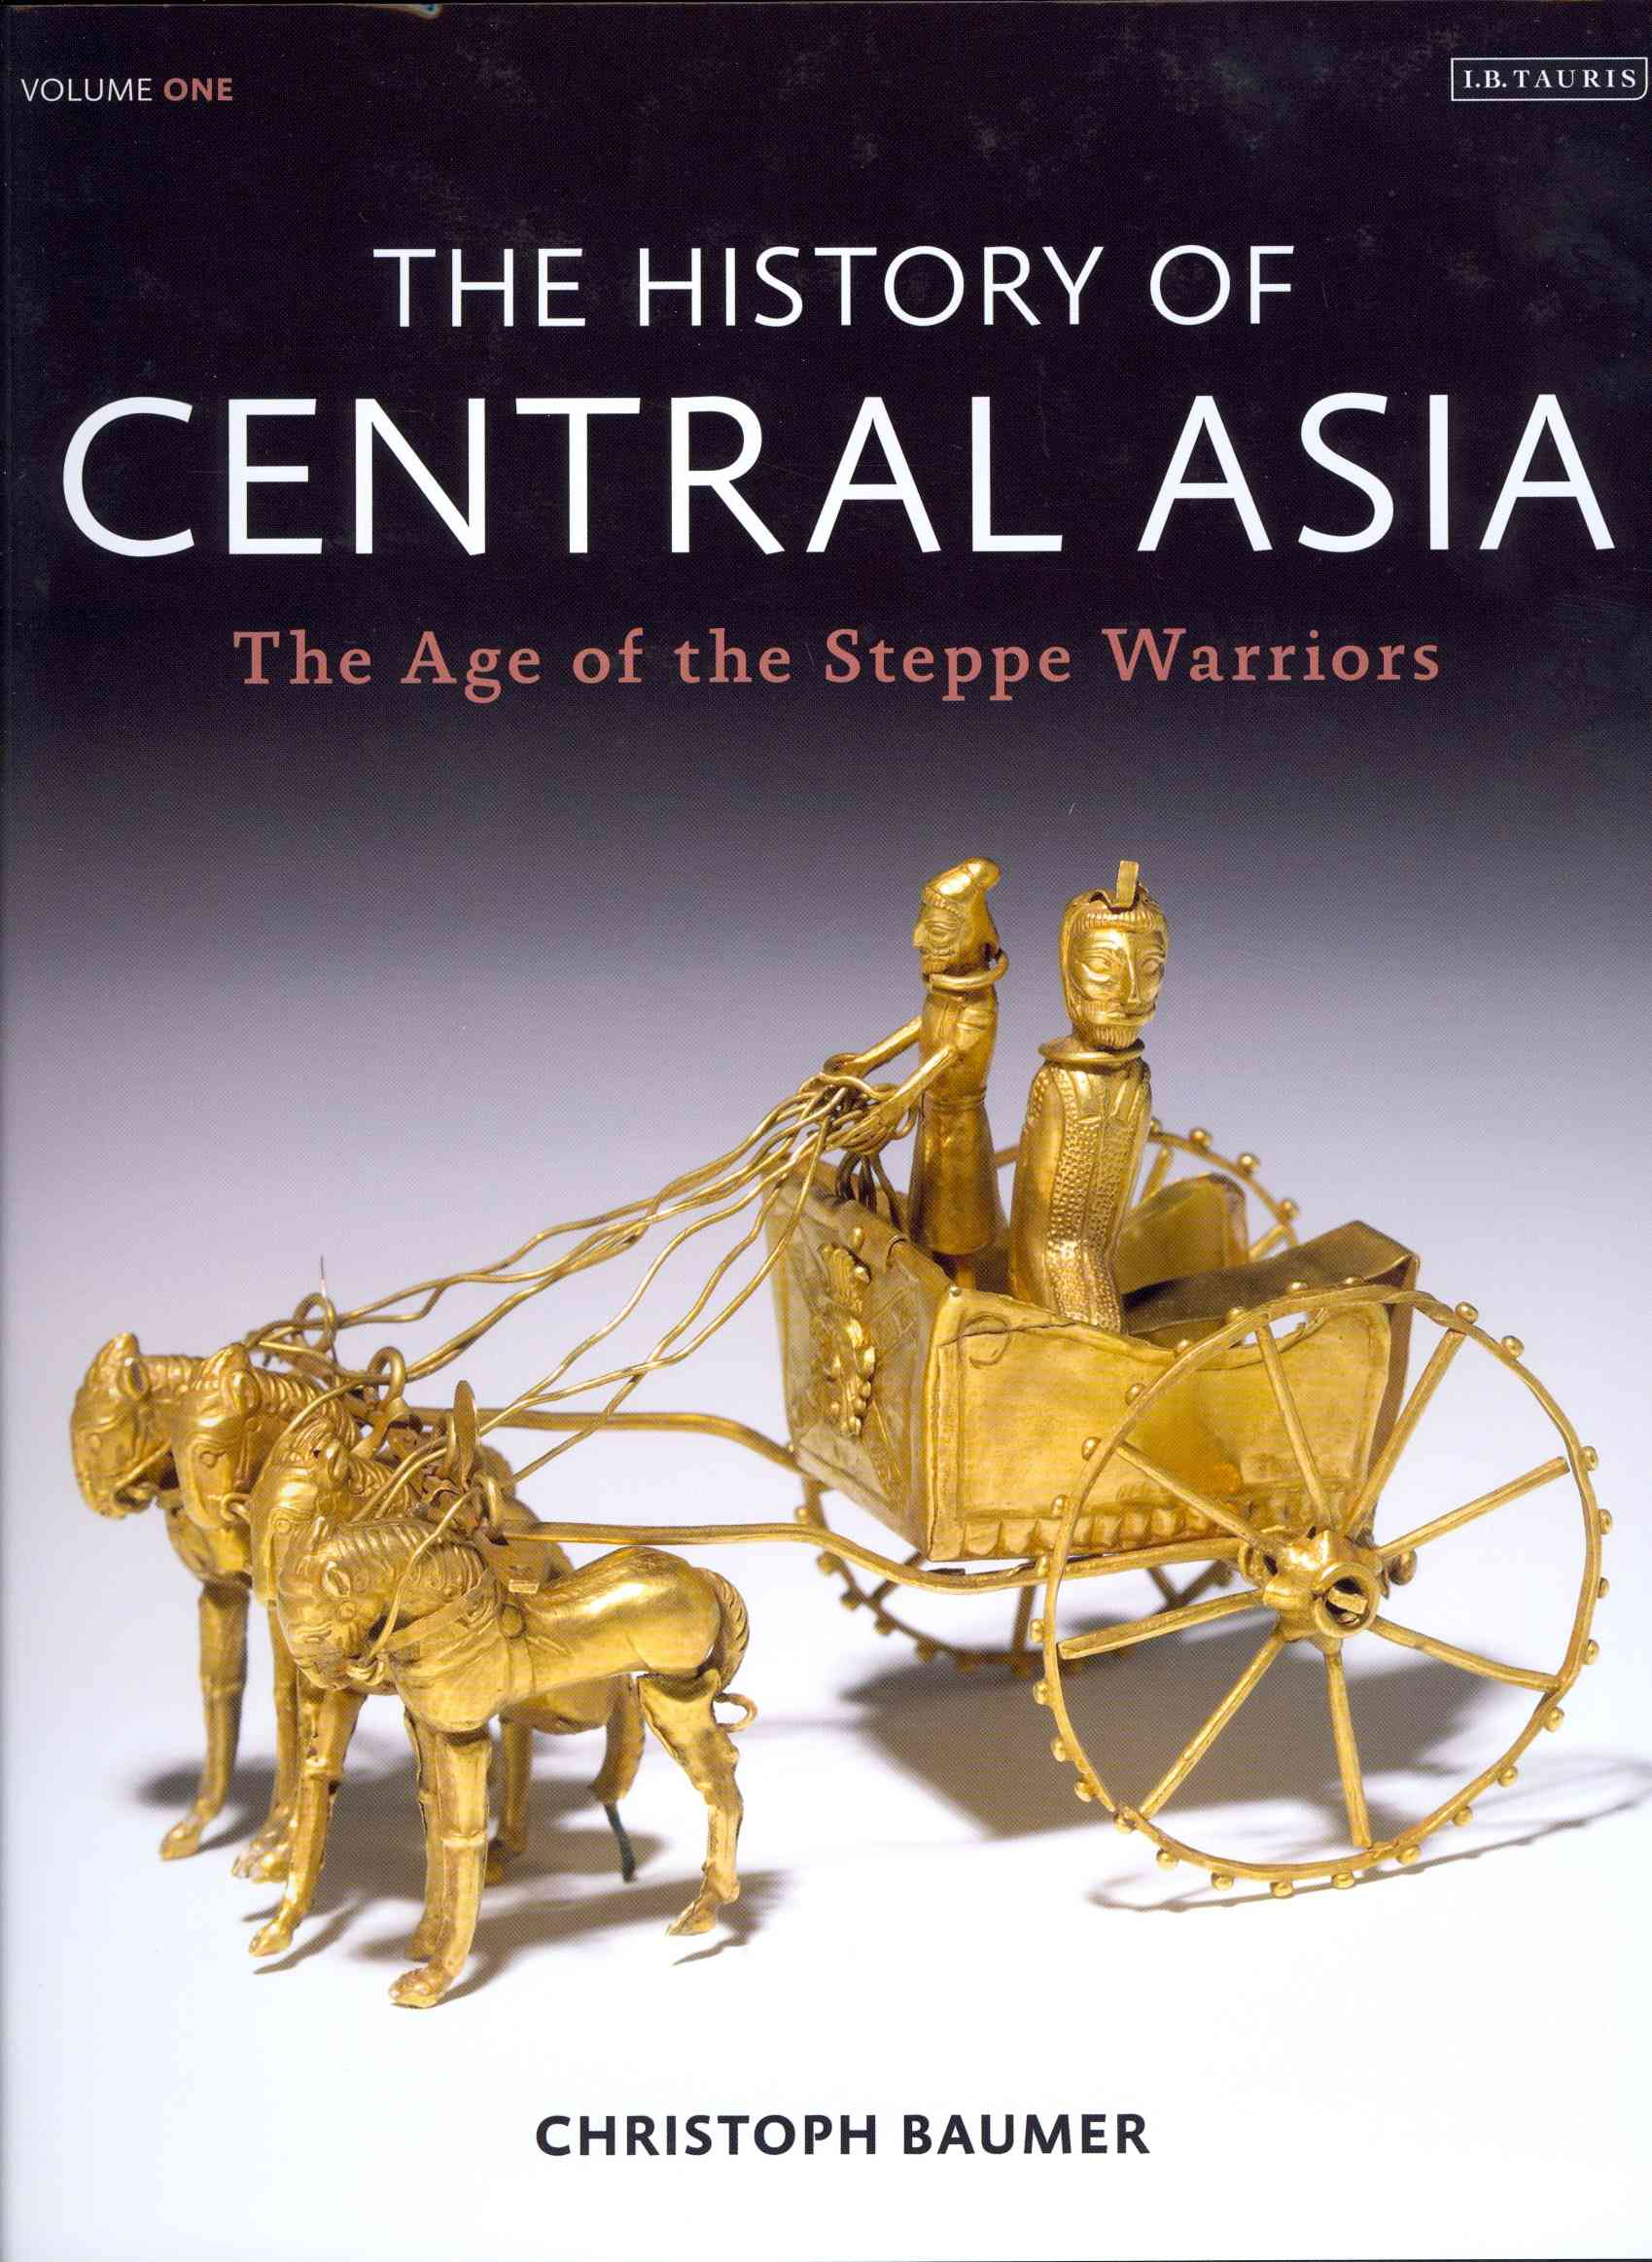 The Age of the Steppe Warriors By Baumer, Christoph